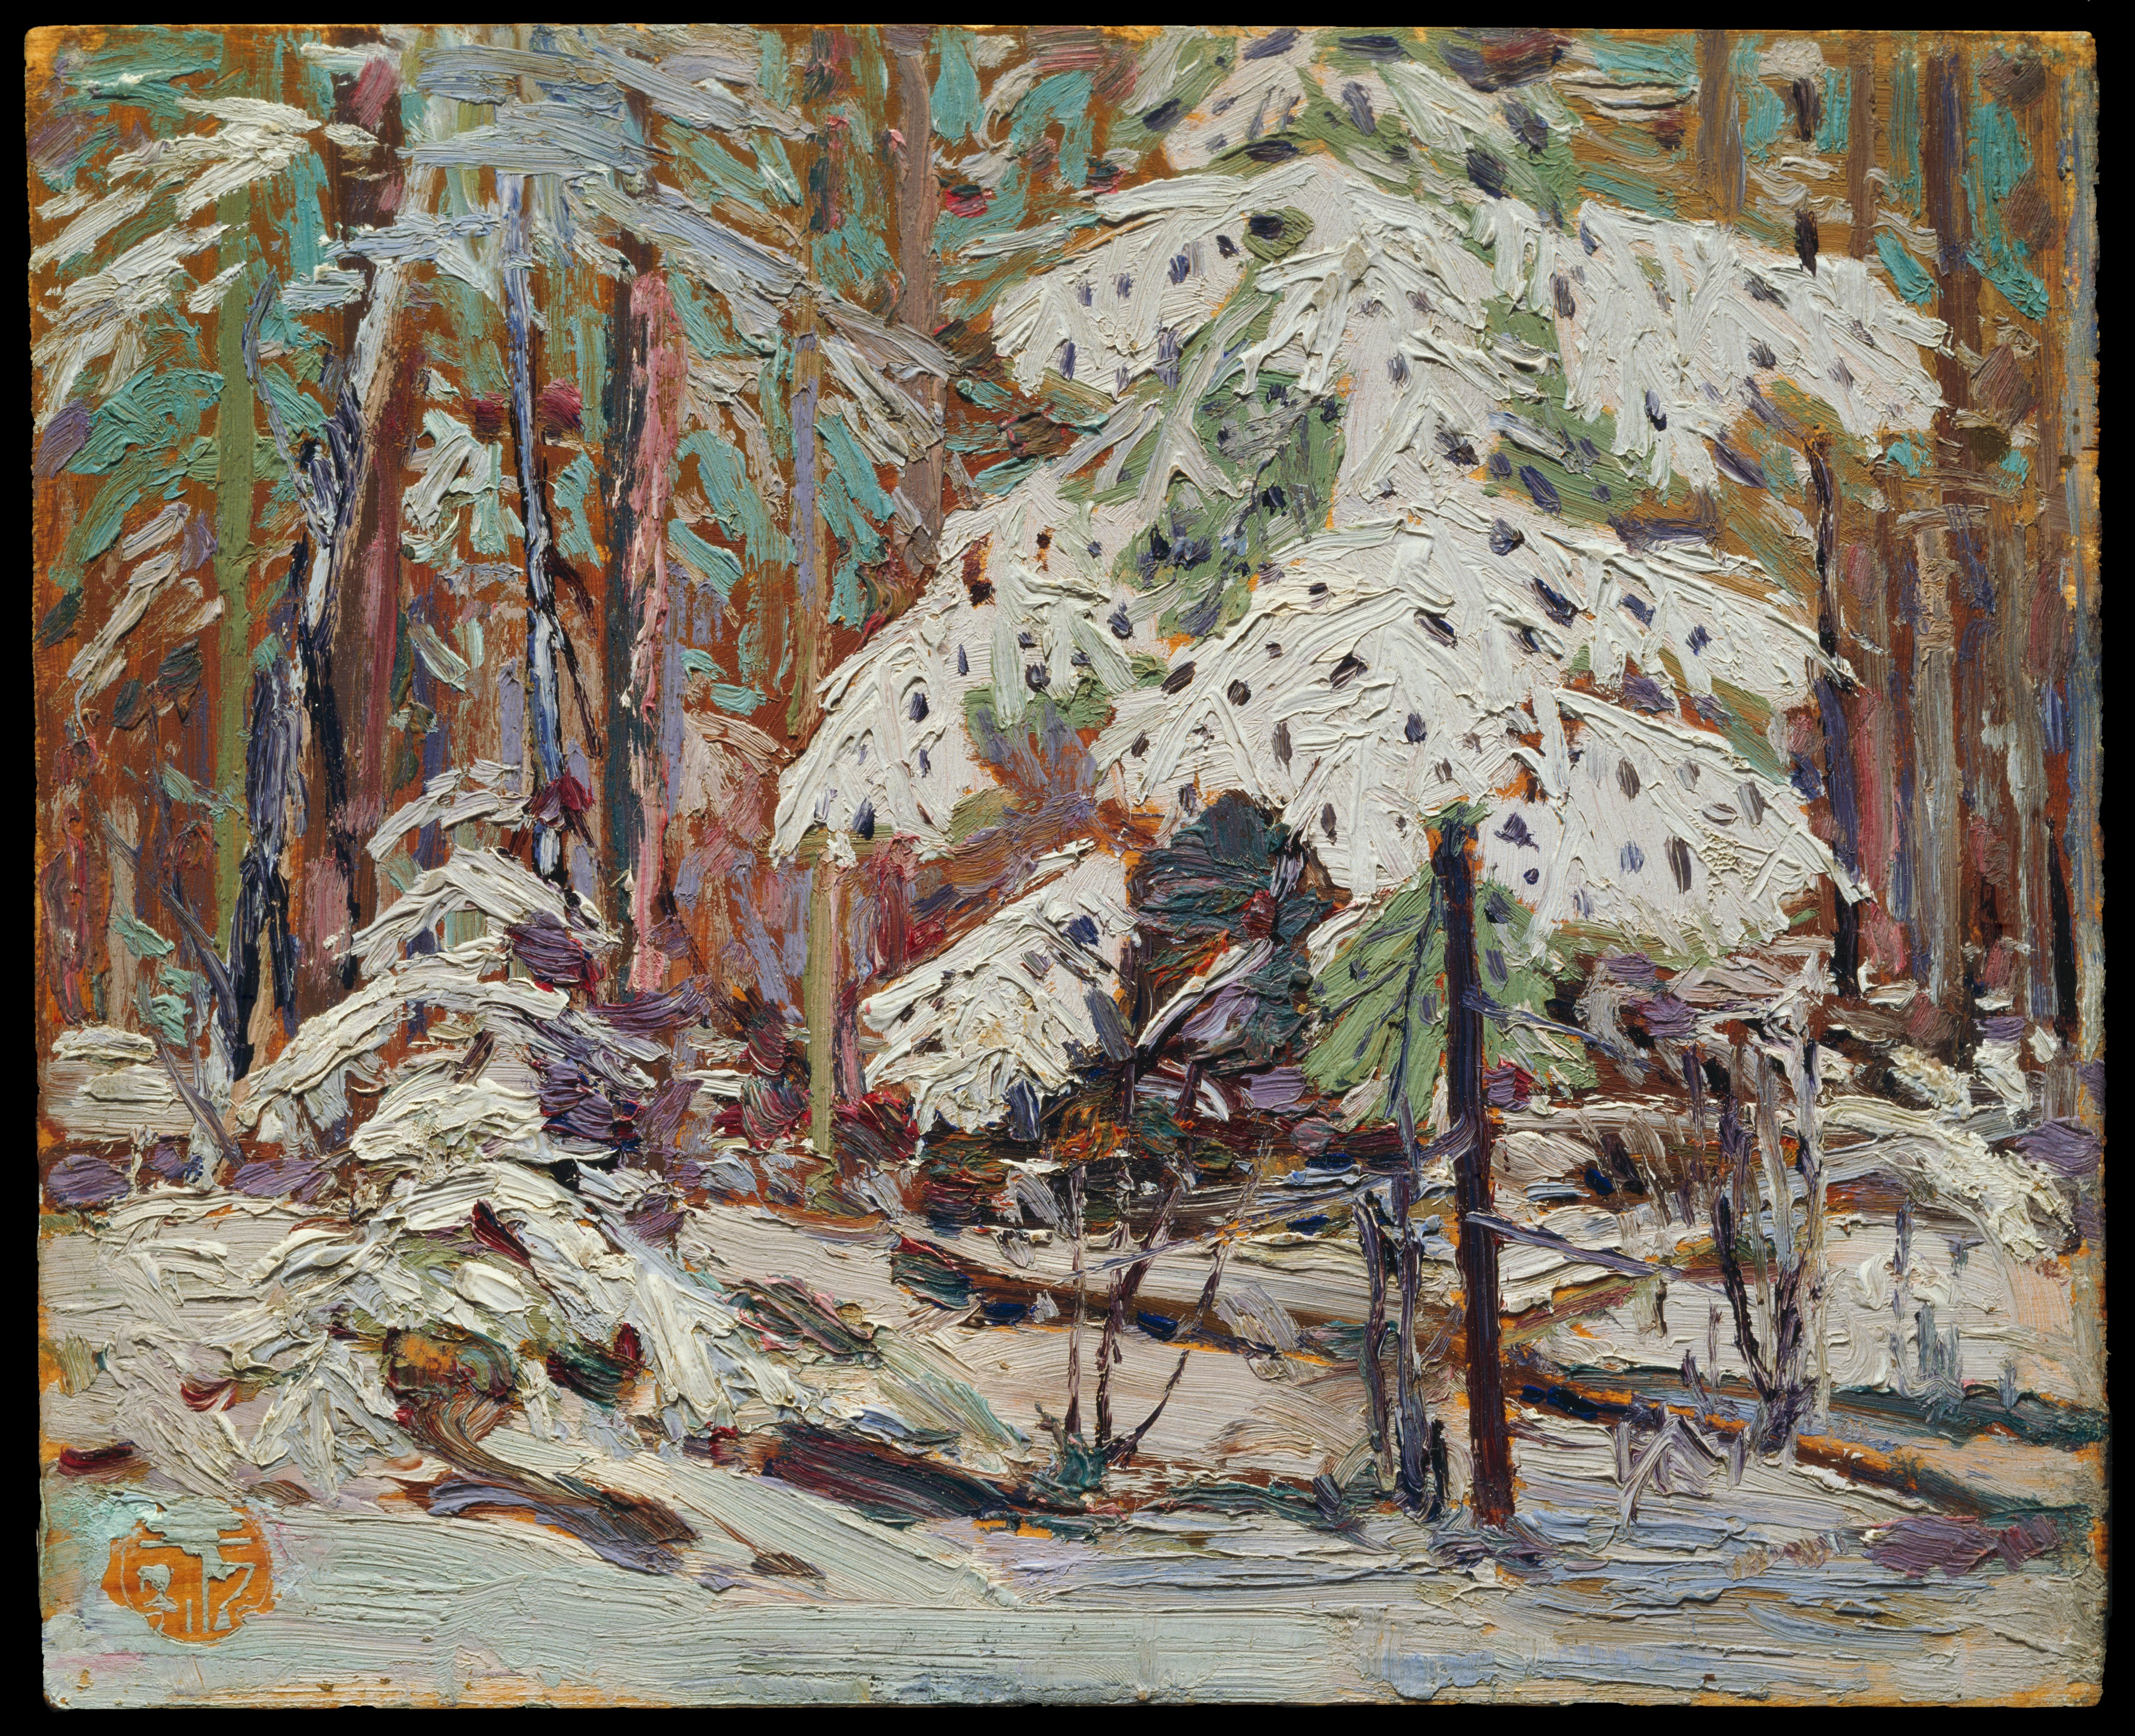 Tom Thomson Catalogue Raisonné | Snow in the Woods, Fall 1916 (1916.174) | Catalogue entry